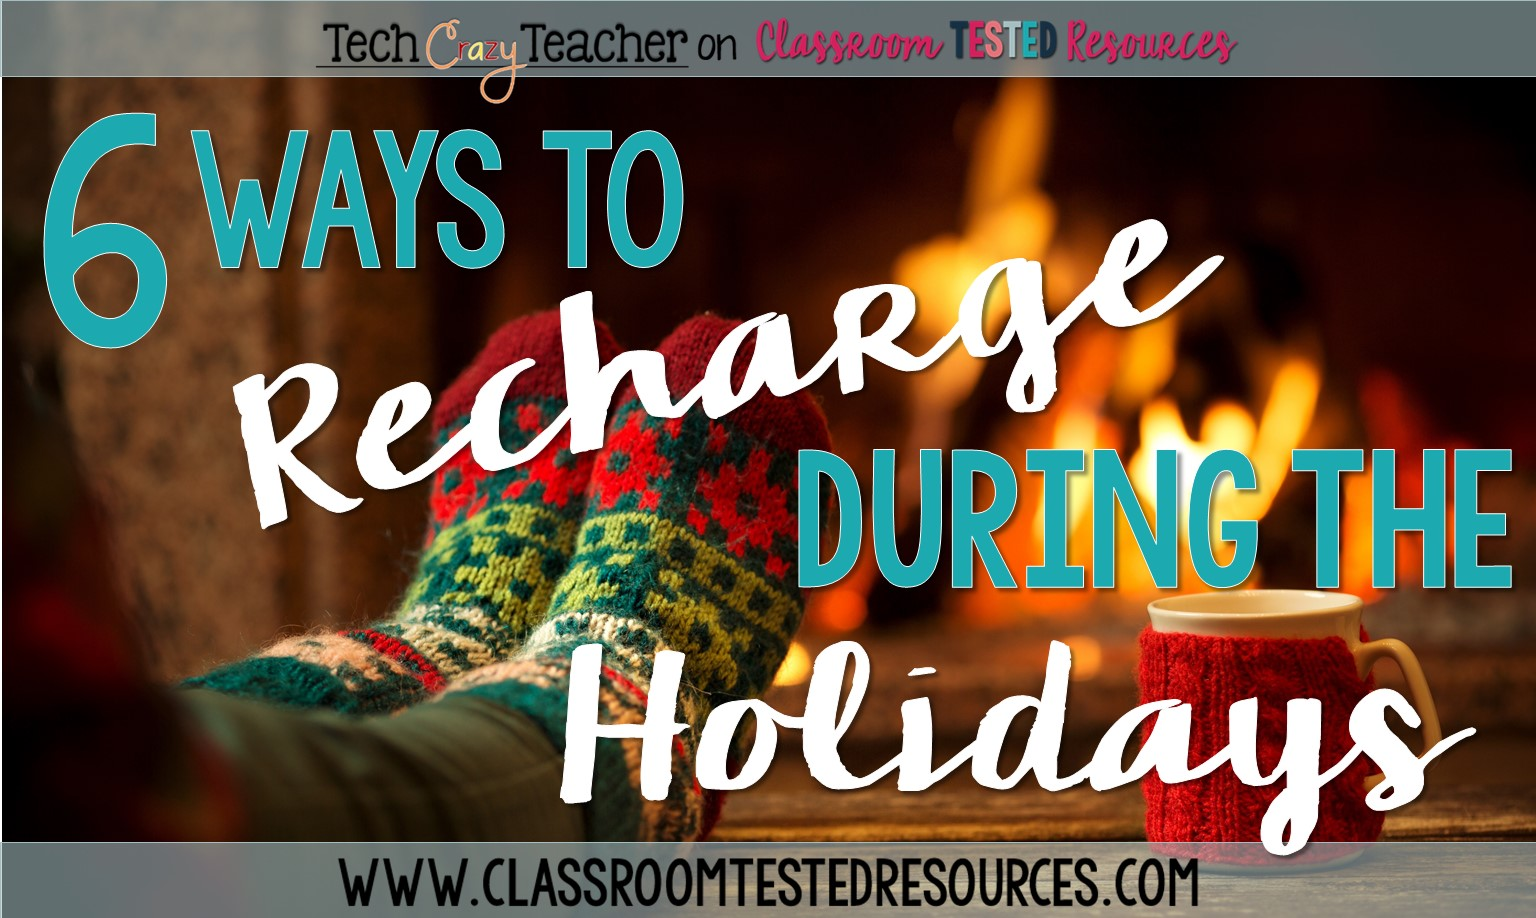 Here are 6 ways to recharge, relax, and decompress over the holidays!